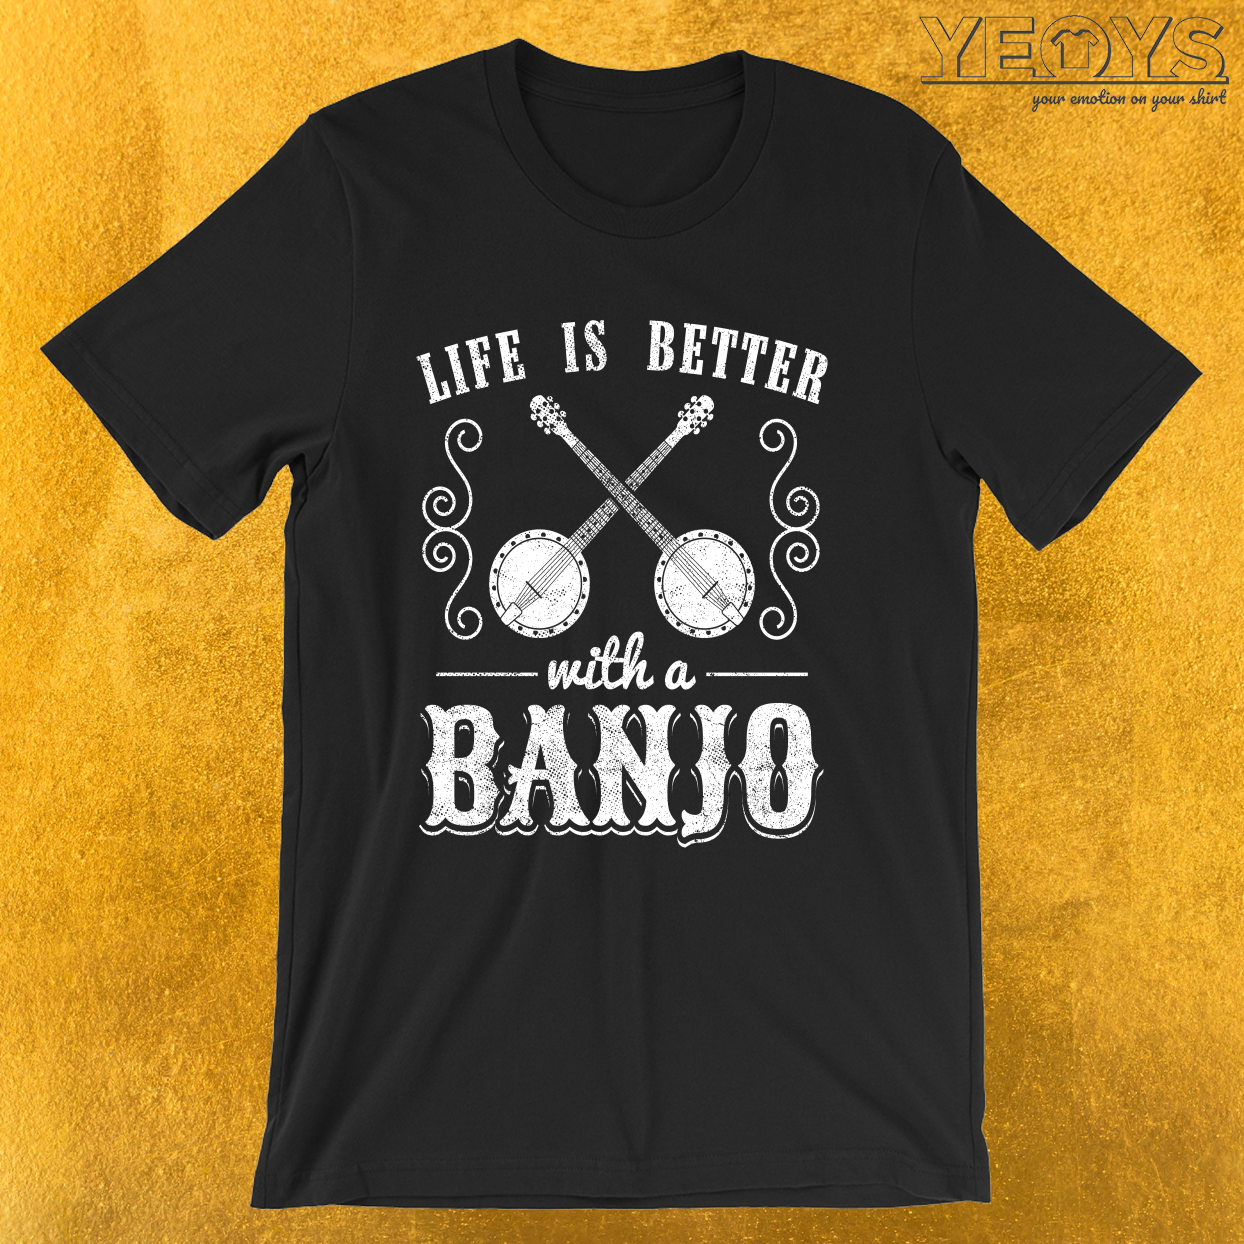 Banjo Ukulele – Life Is Better With A Banjo Tee